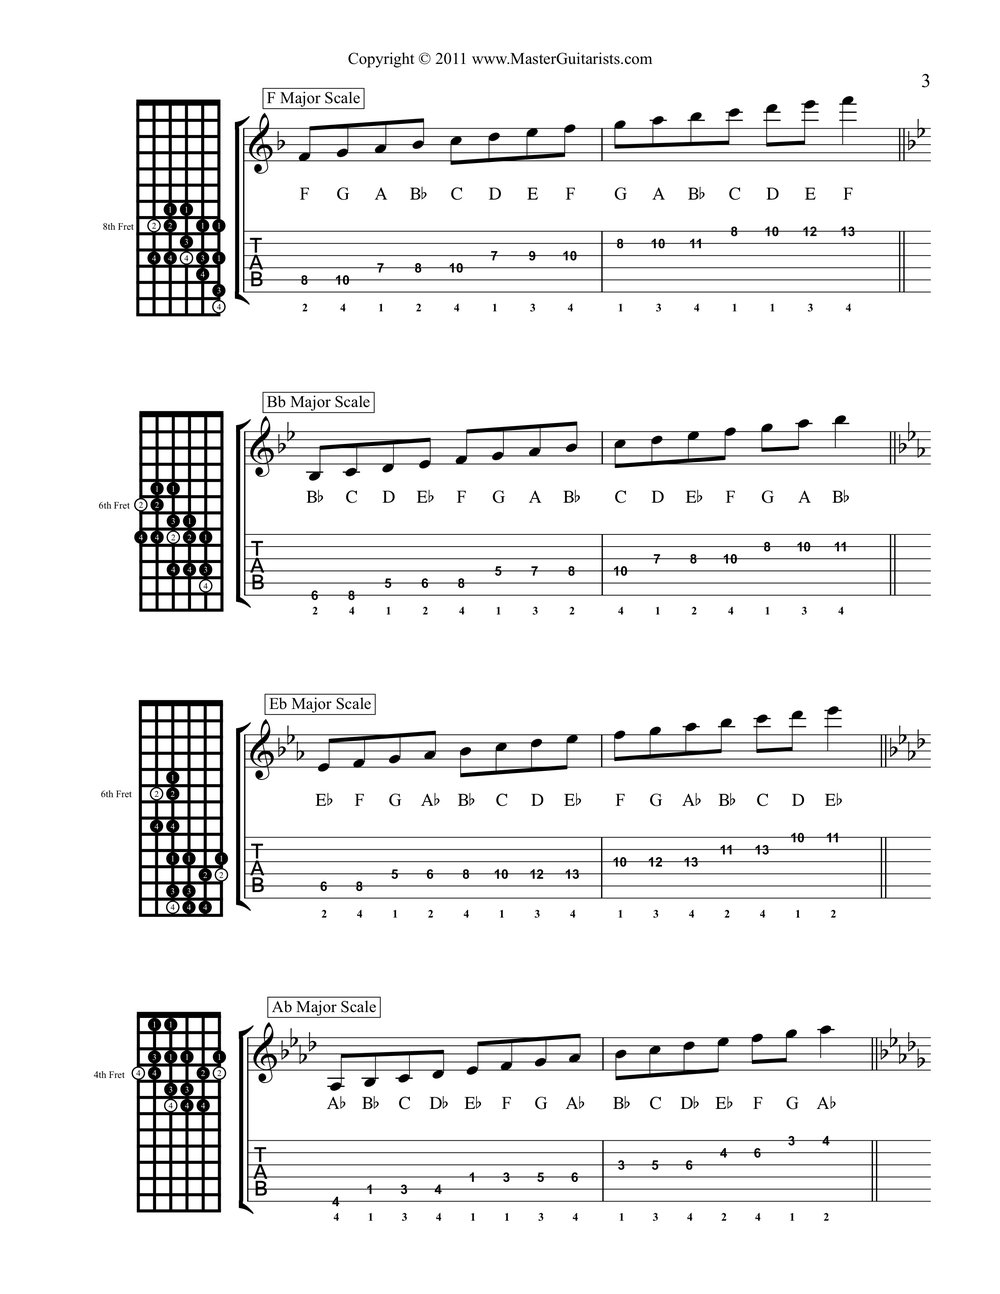 15 Two Octave Fingerings For The Major Scale1318212833 3-3.jpeg